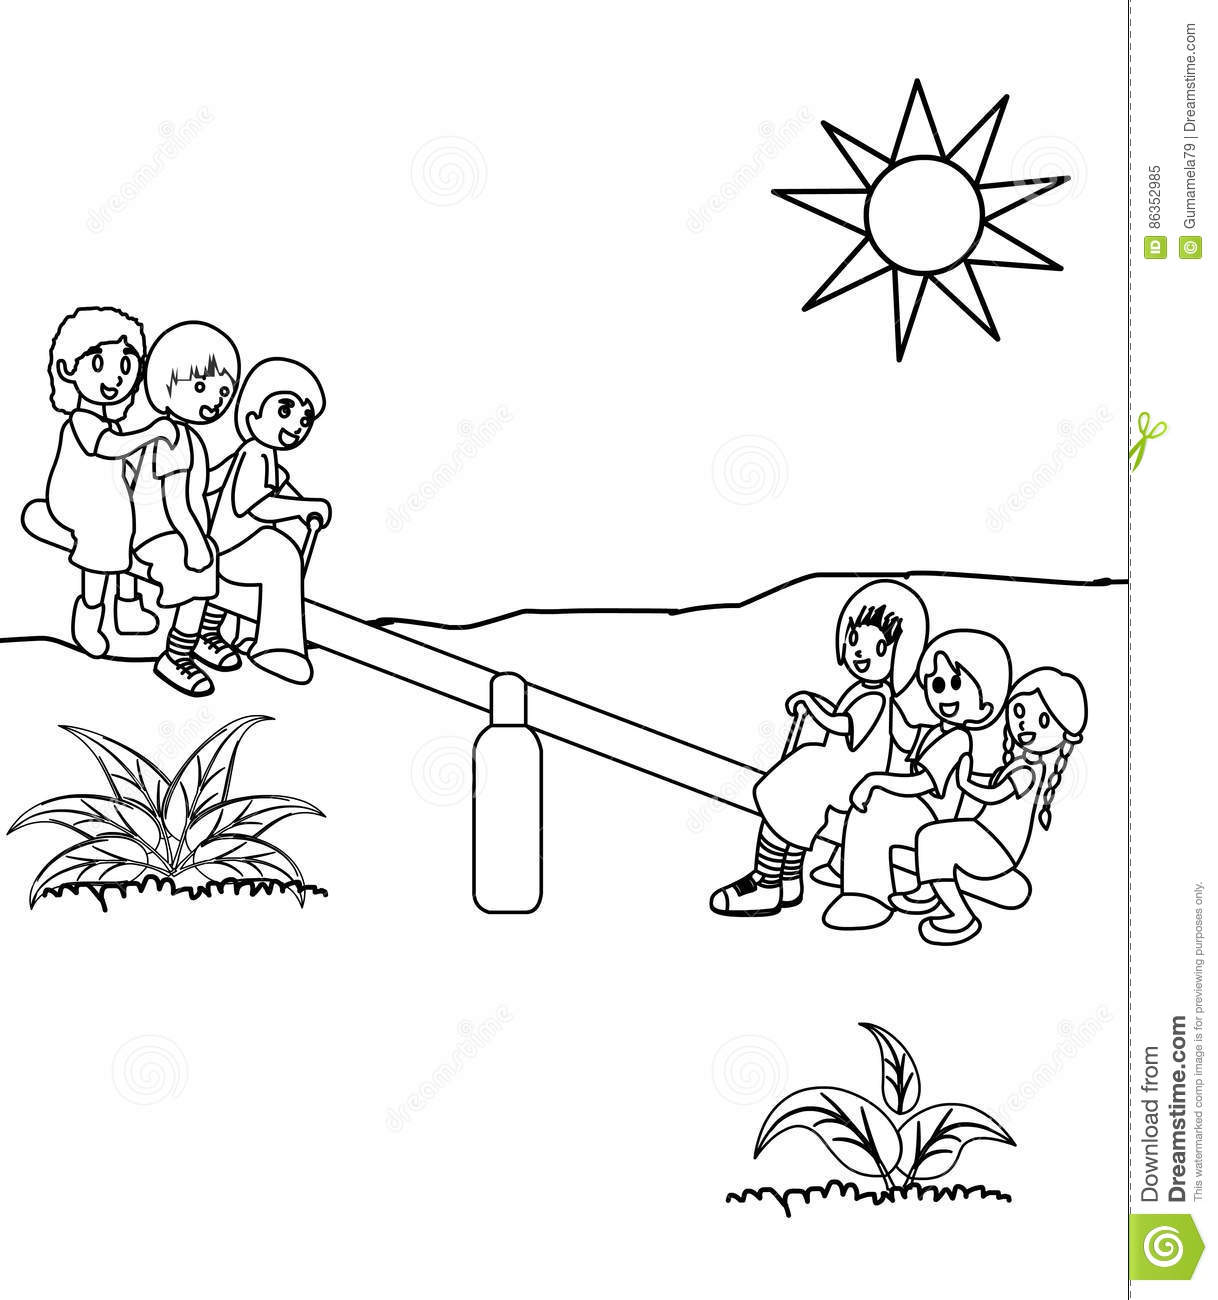 playground coloring page stock illustration image 86352985